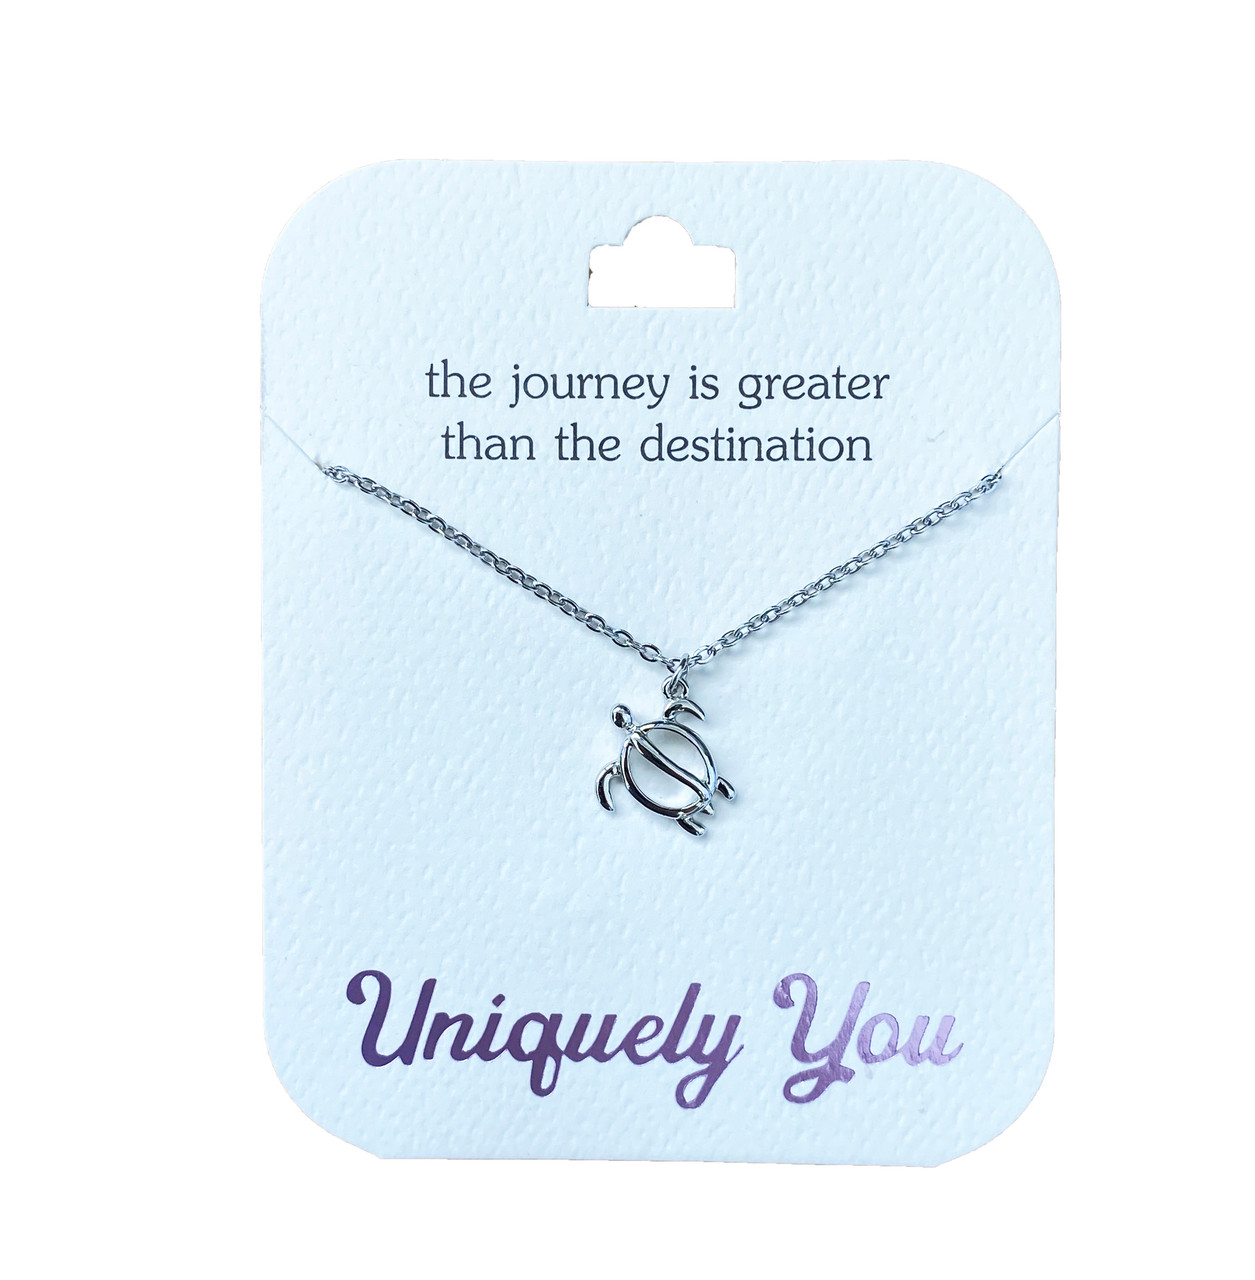 YOU4026 Uniquely You Pendant, The journey is greater